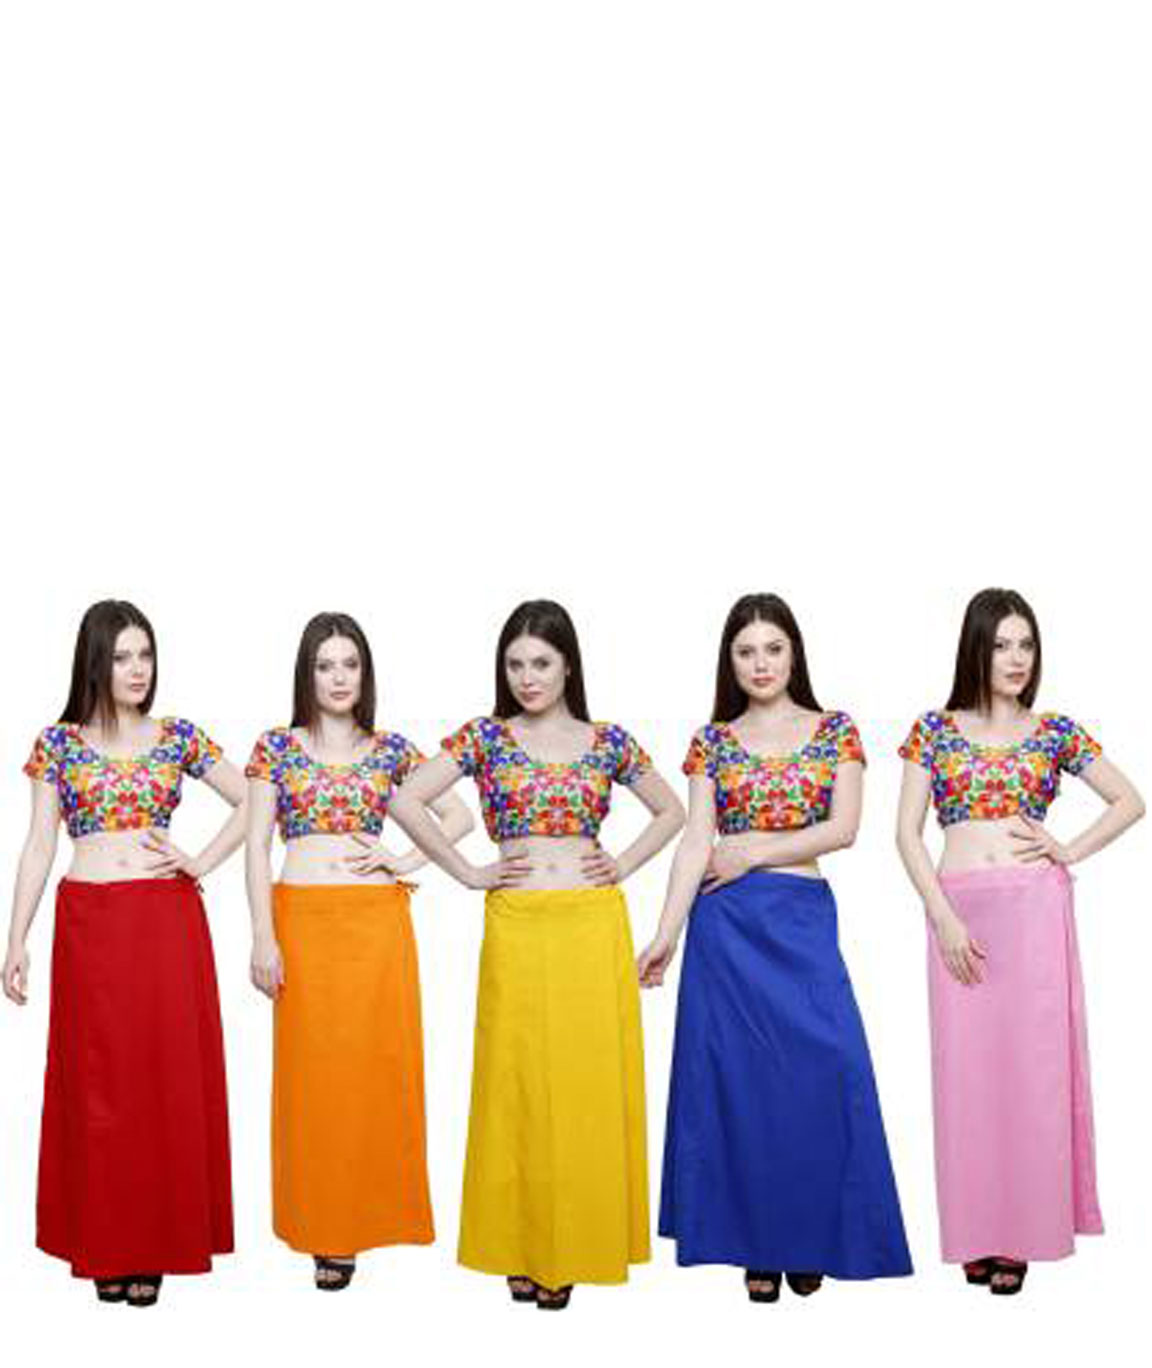 MAROON, ORANGE, YELLOW, INK BLUE AND PASTLE PINK COTTON BLEND PETTICOAT (XL)